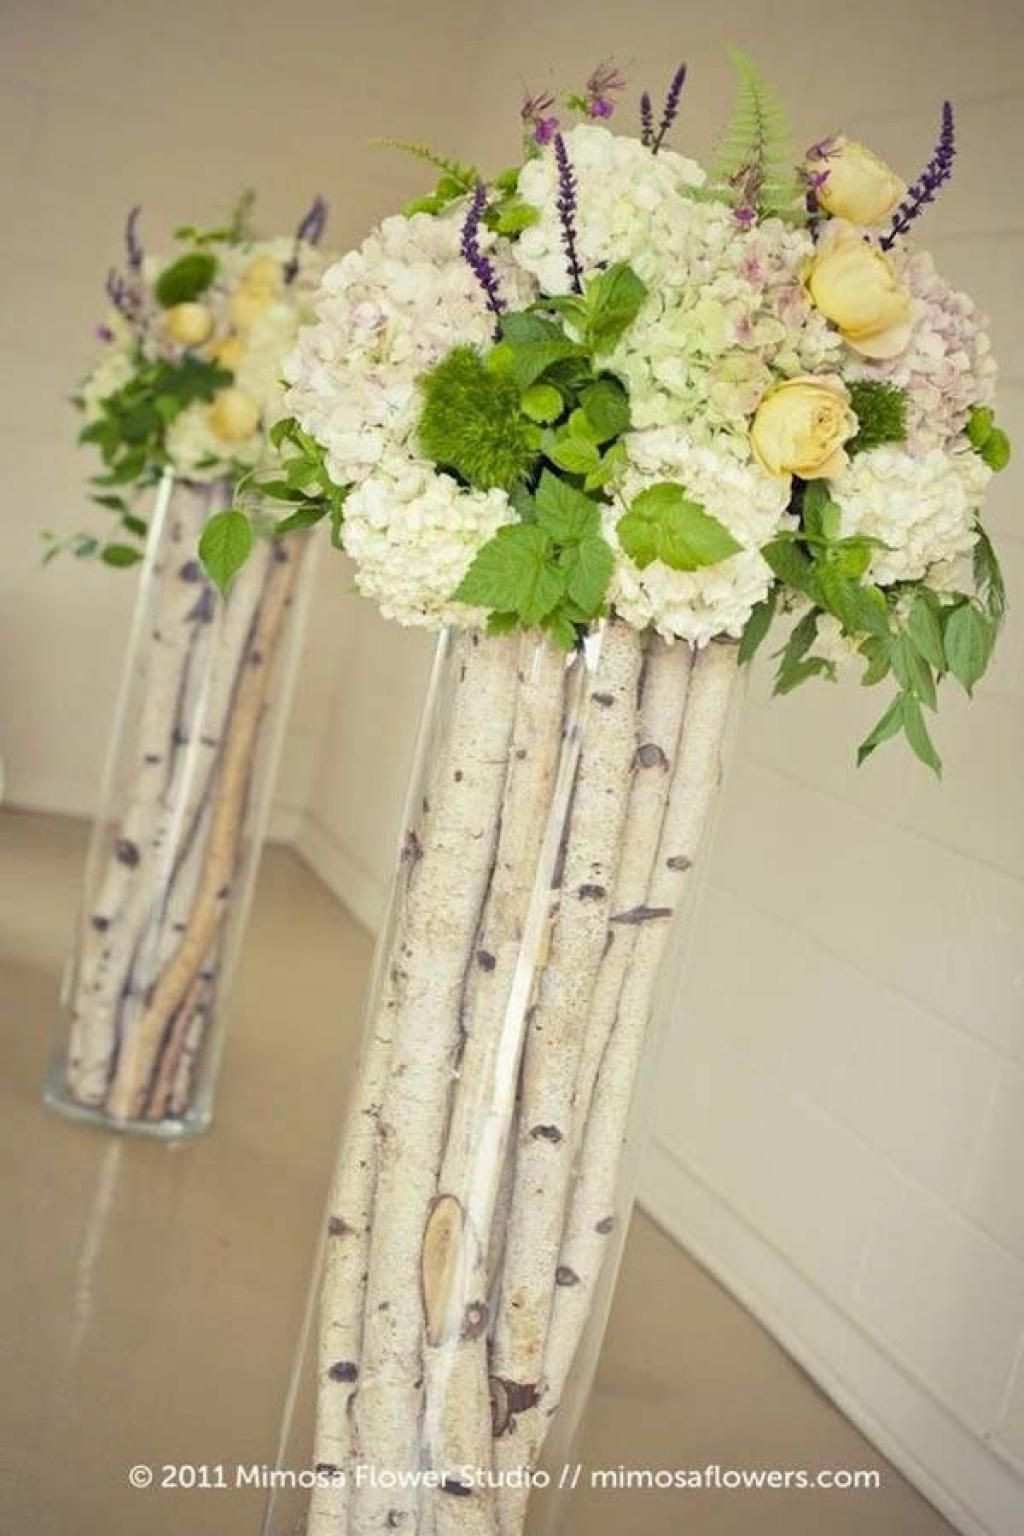 10 Stylish Driftwood Vase Filler 2021 free download driftwood vase filler of 12 ideas to make vases with logs and wood slabs decoration tips inside 12 ideas to make vases with logs and wood slabs decoration tips and crafts